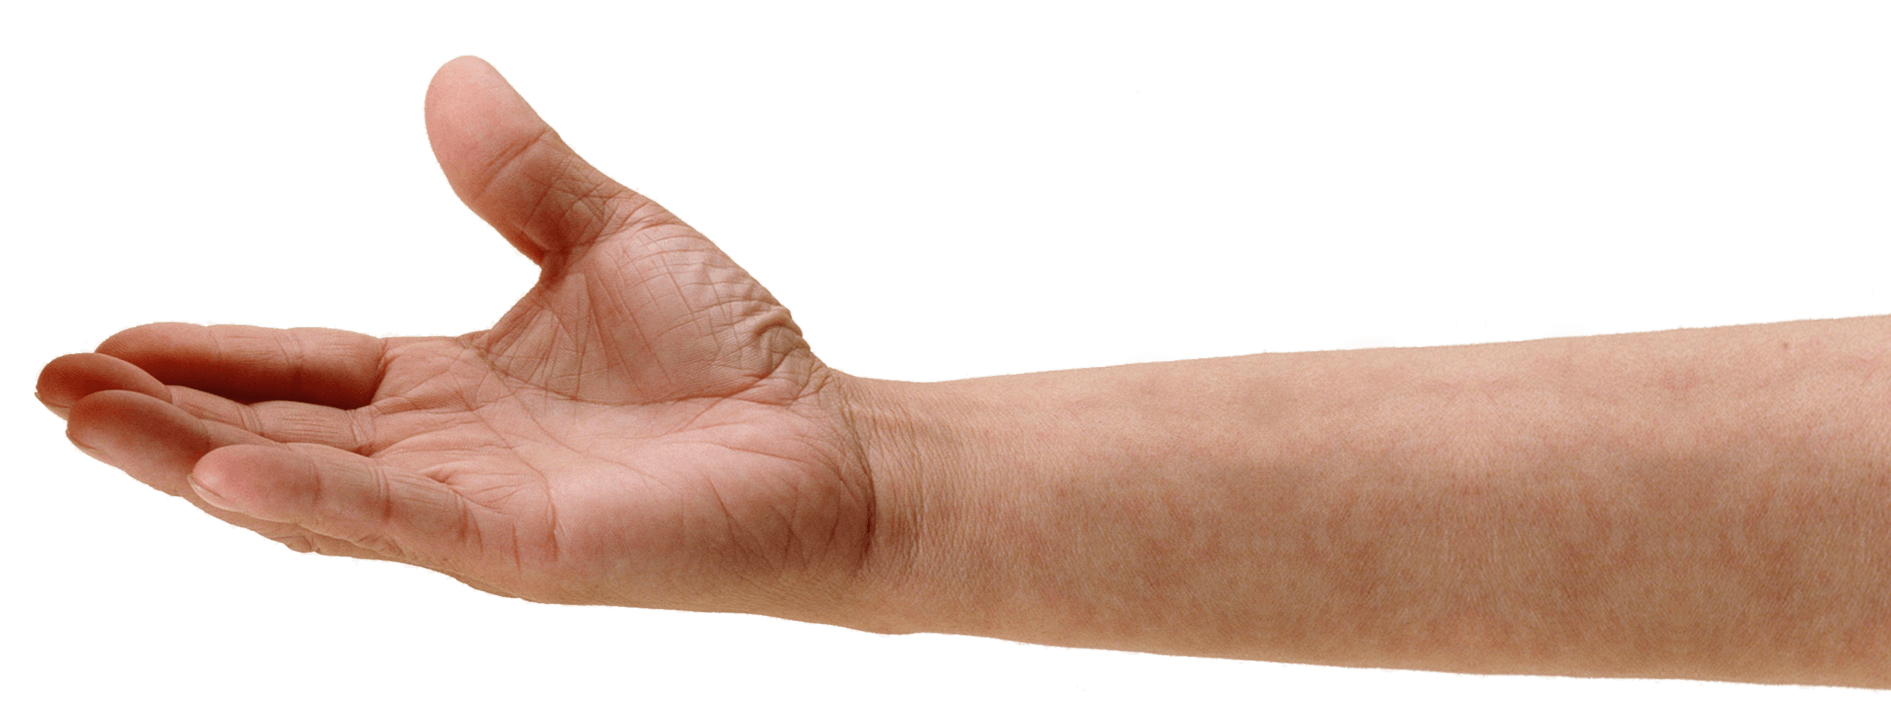 hand.png (1891×708) - Hands PNG HD